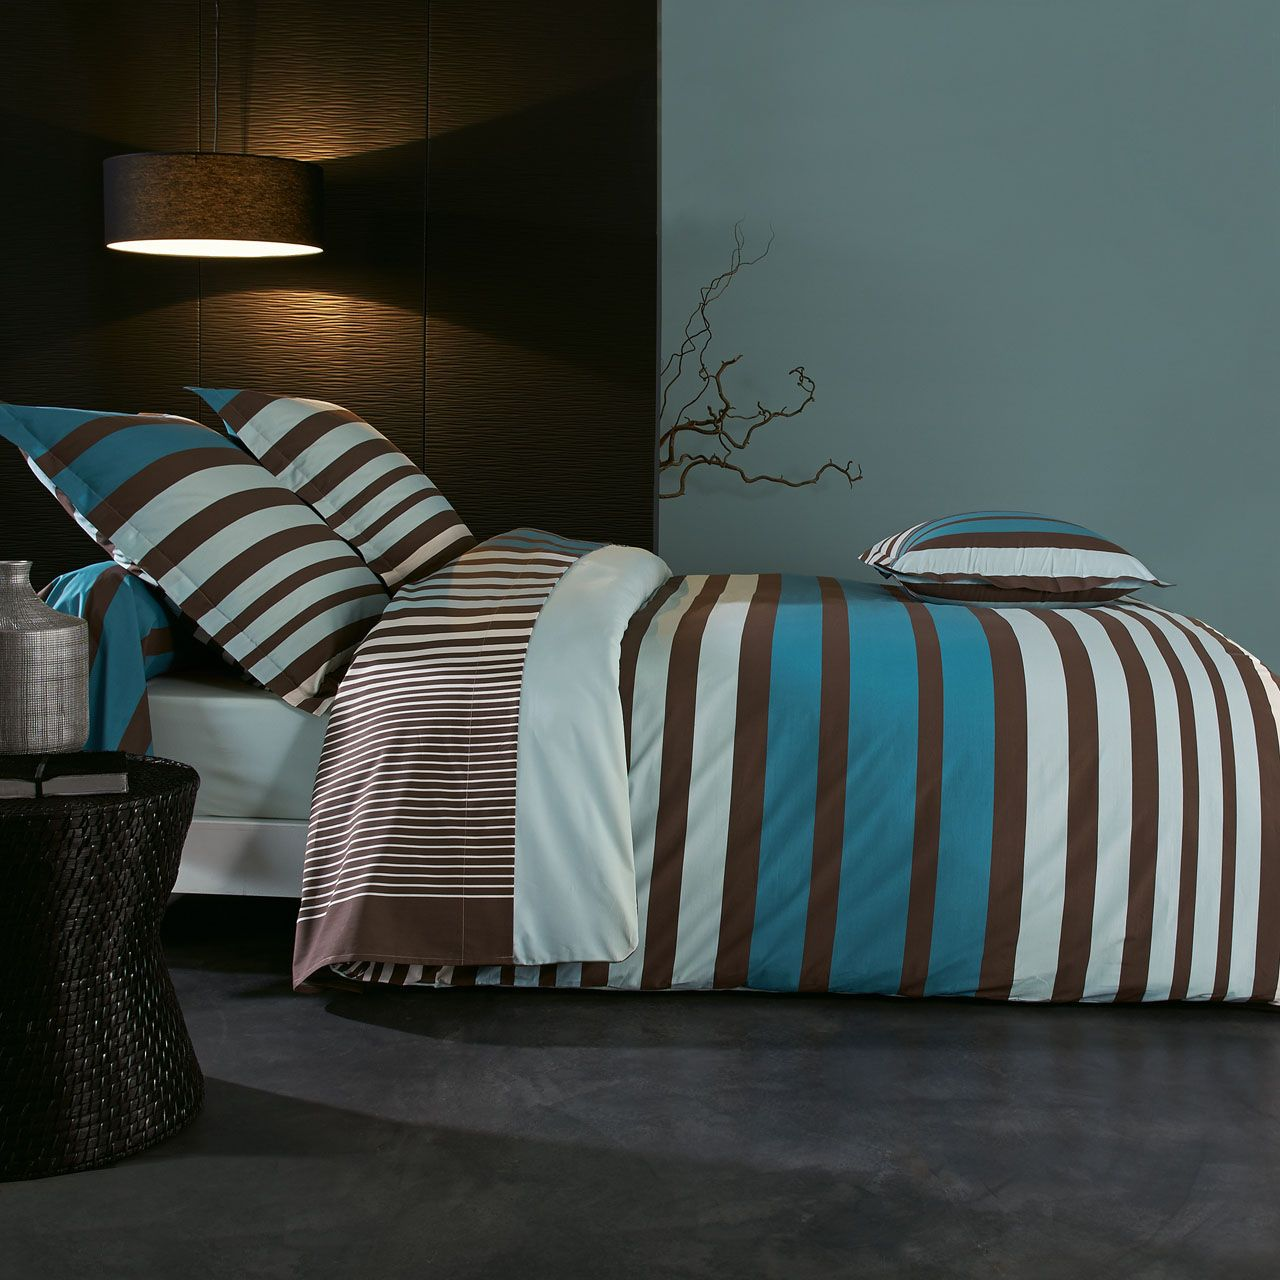 drap housse percale stripe bleu 160x200 tradilinge. Black Bedroom Furniture Sets. Home Design Ideas